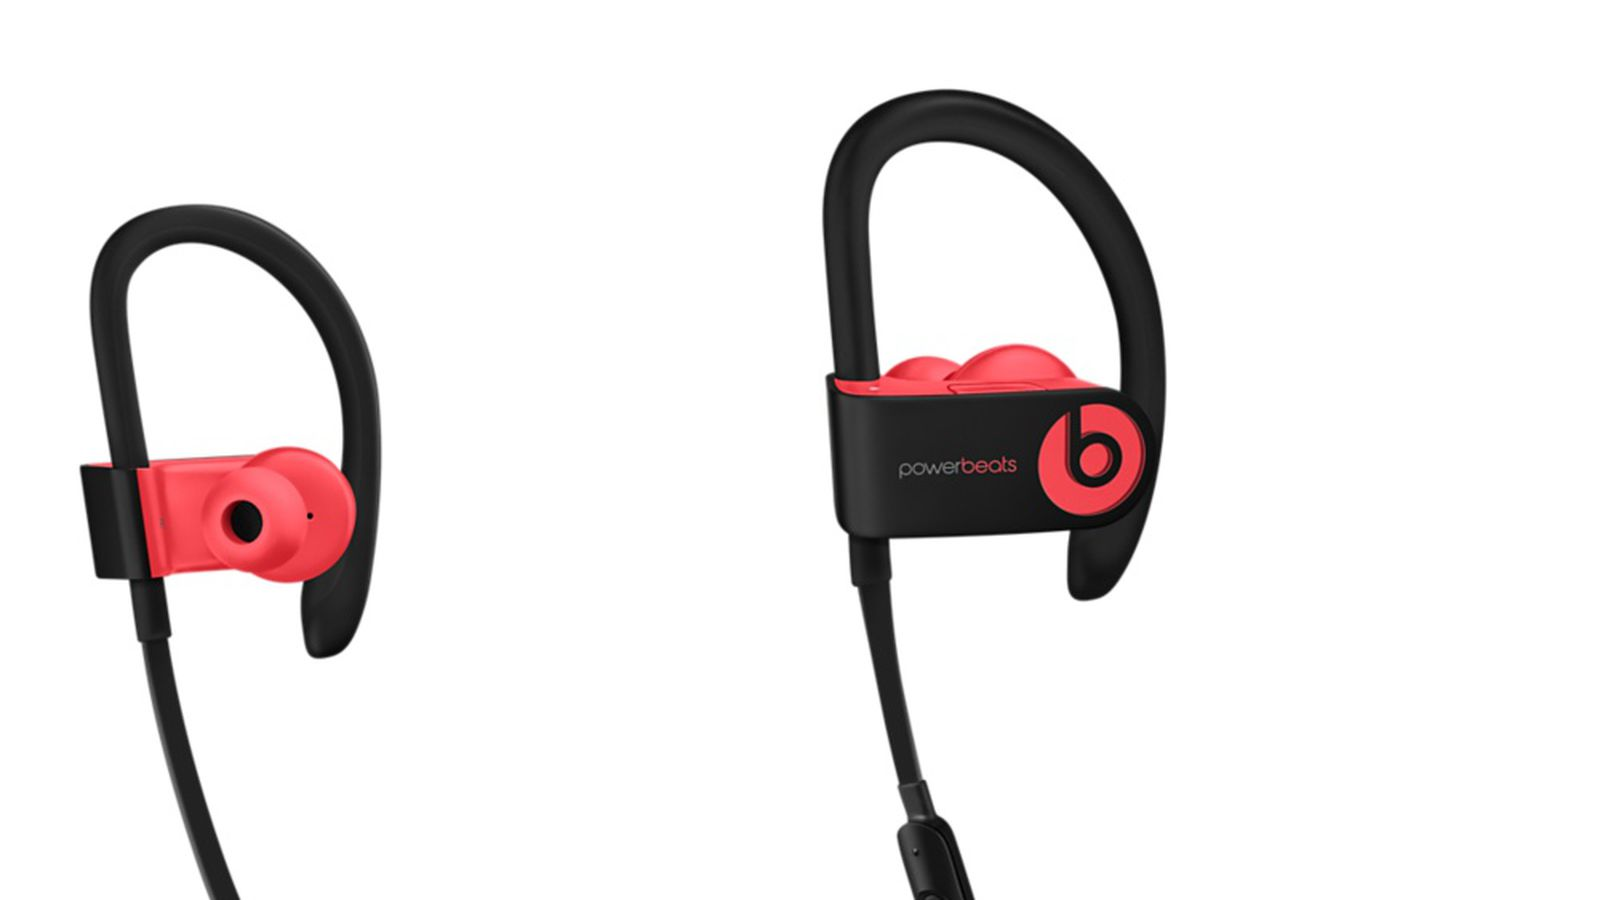 Powerbeats 3 earphones with Apple's W1 chip are now available to ...